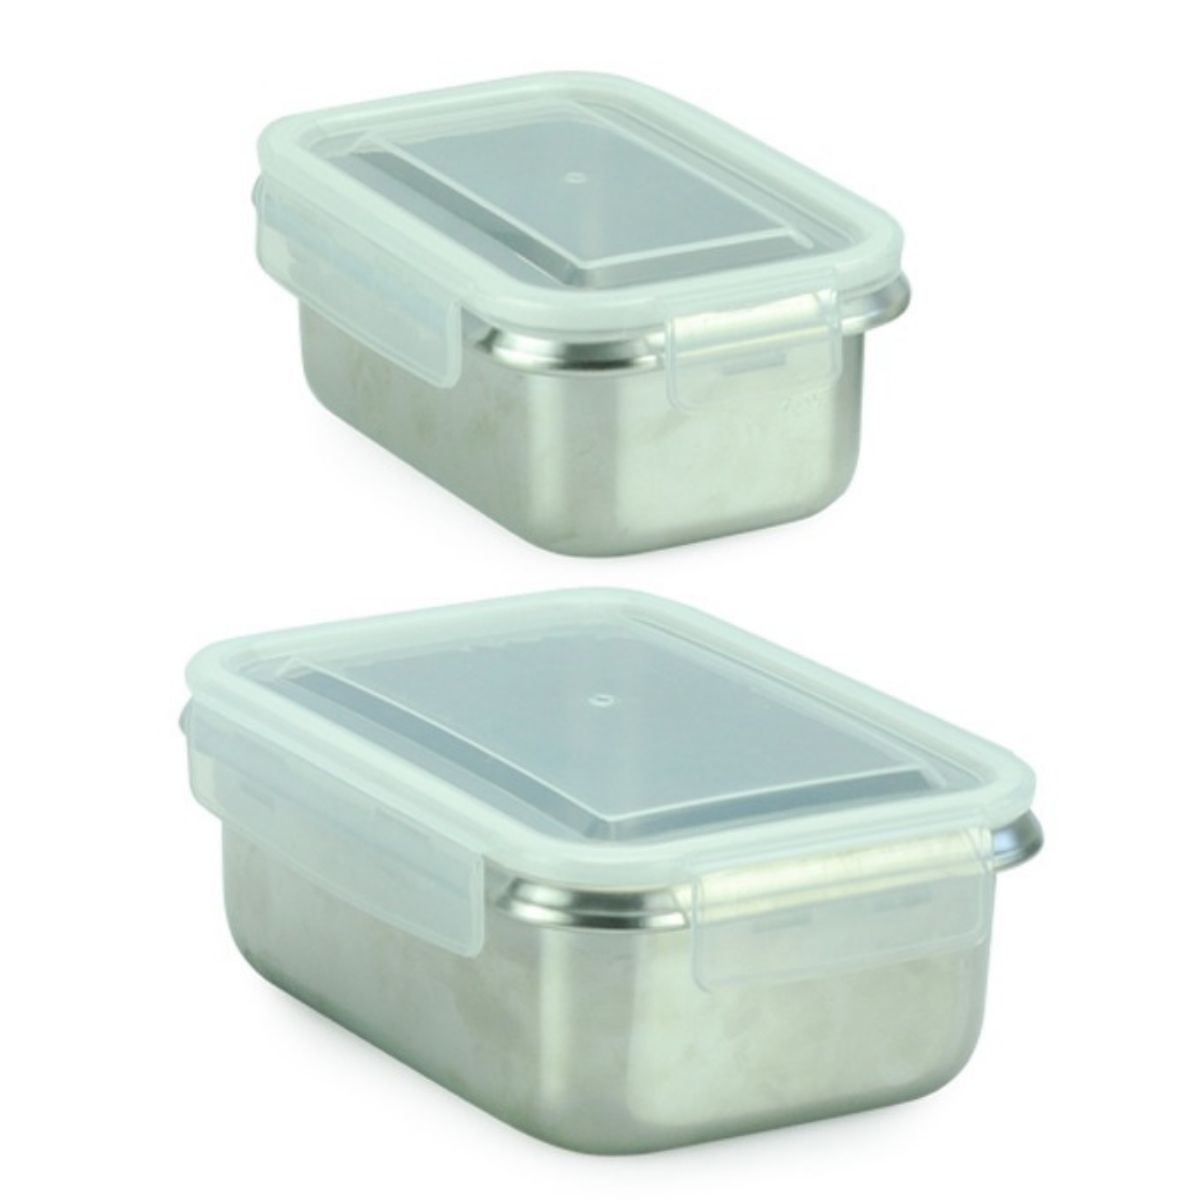 two stainless steel lunch containers